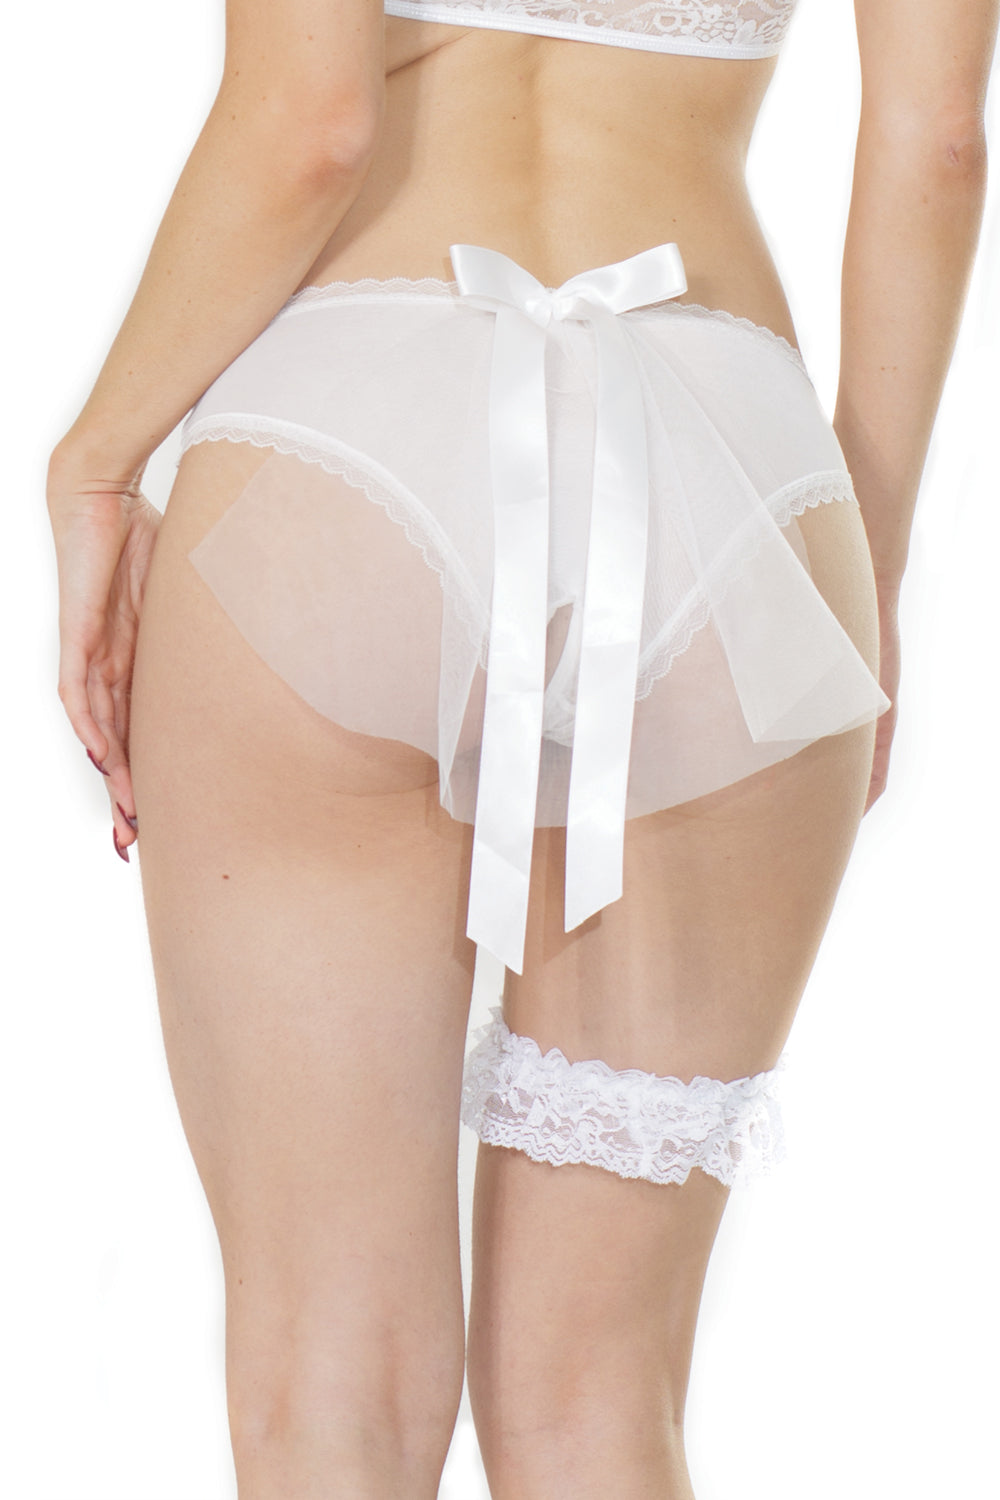 Bridal Mesh Crotchless Panty With Tulle Veil